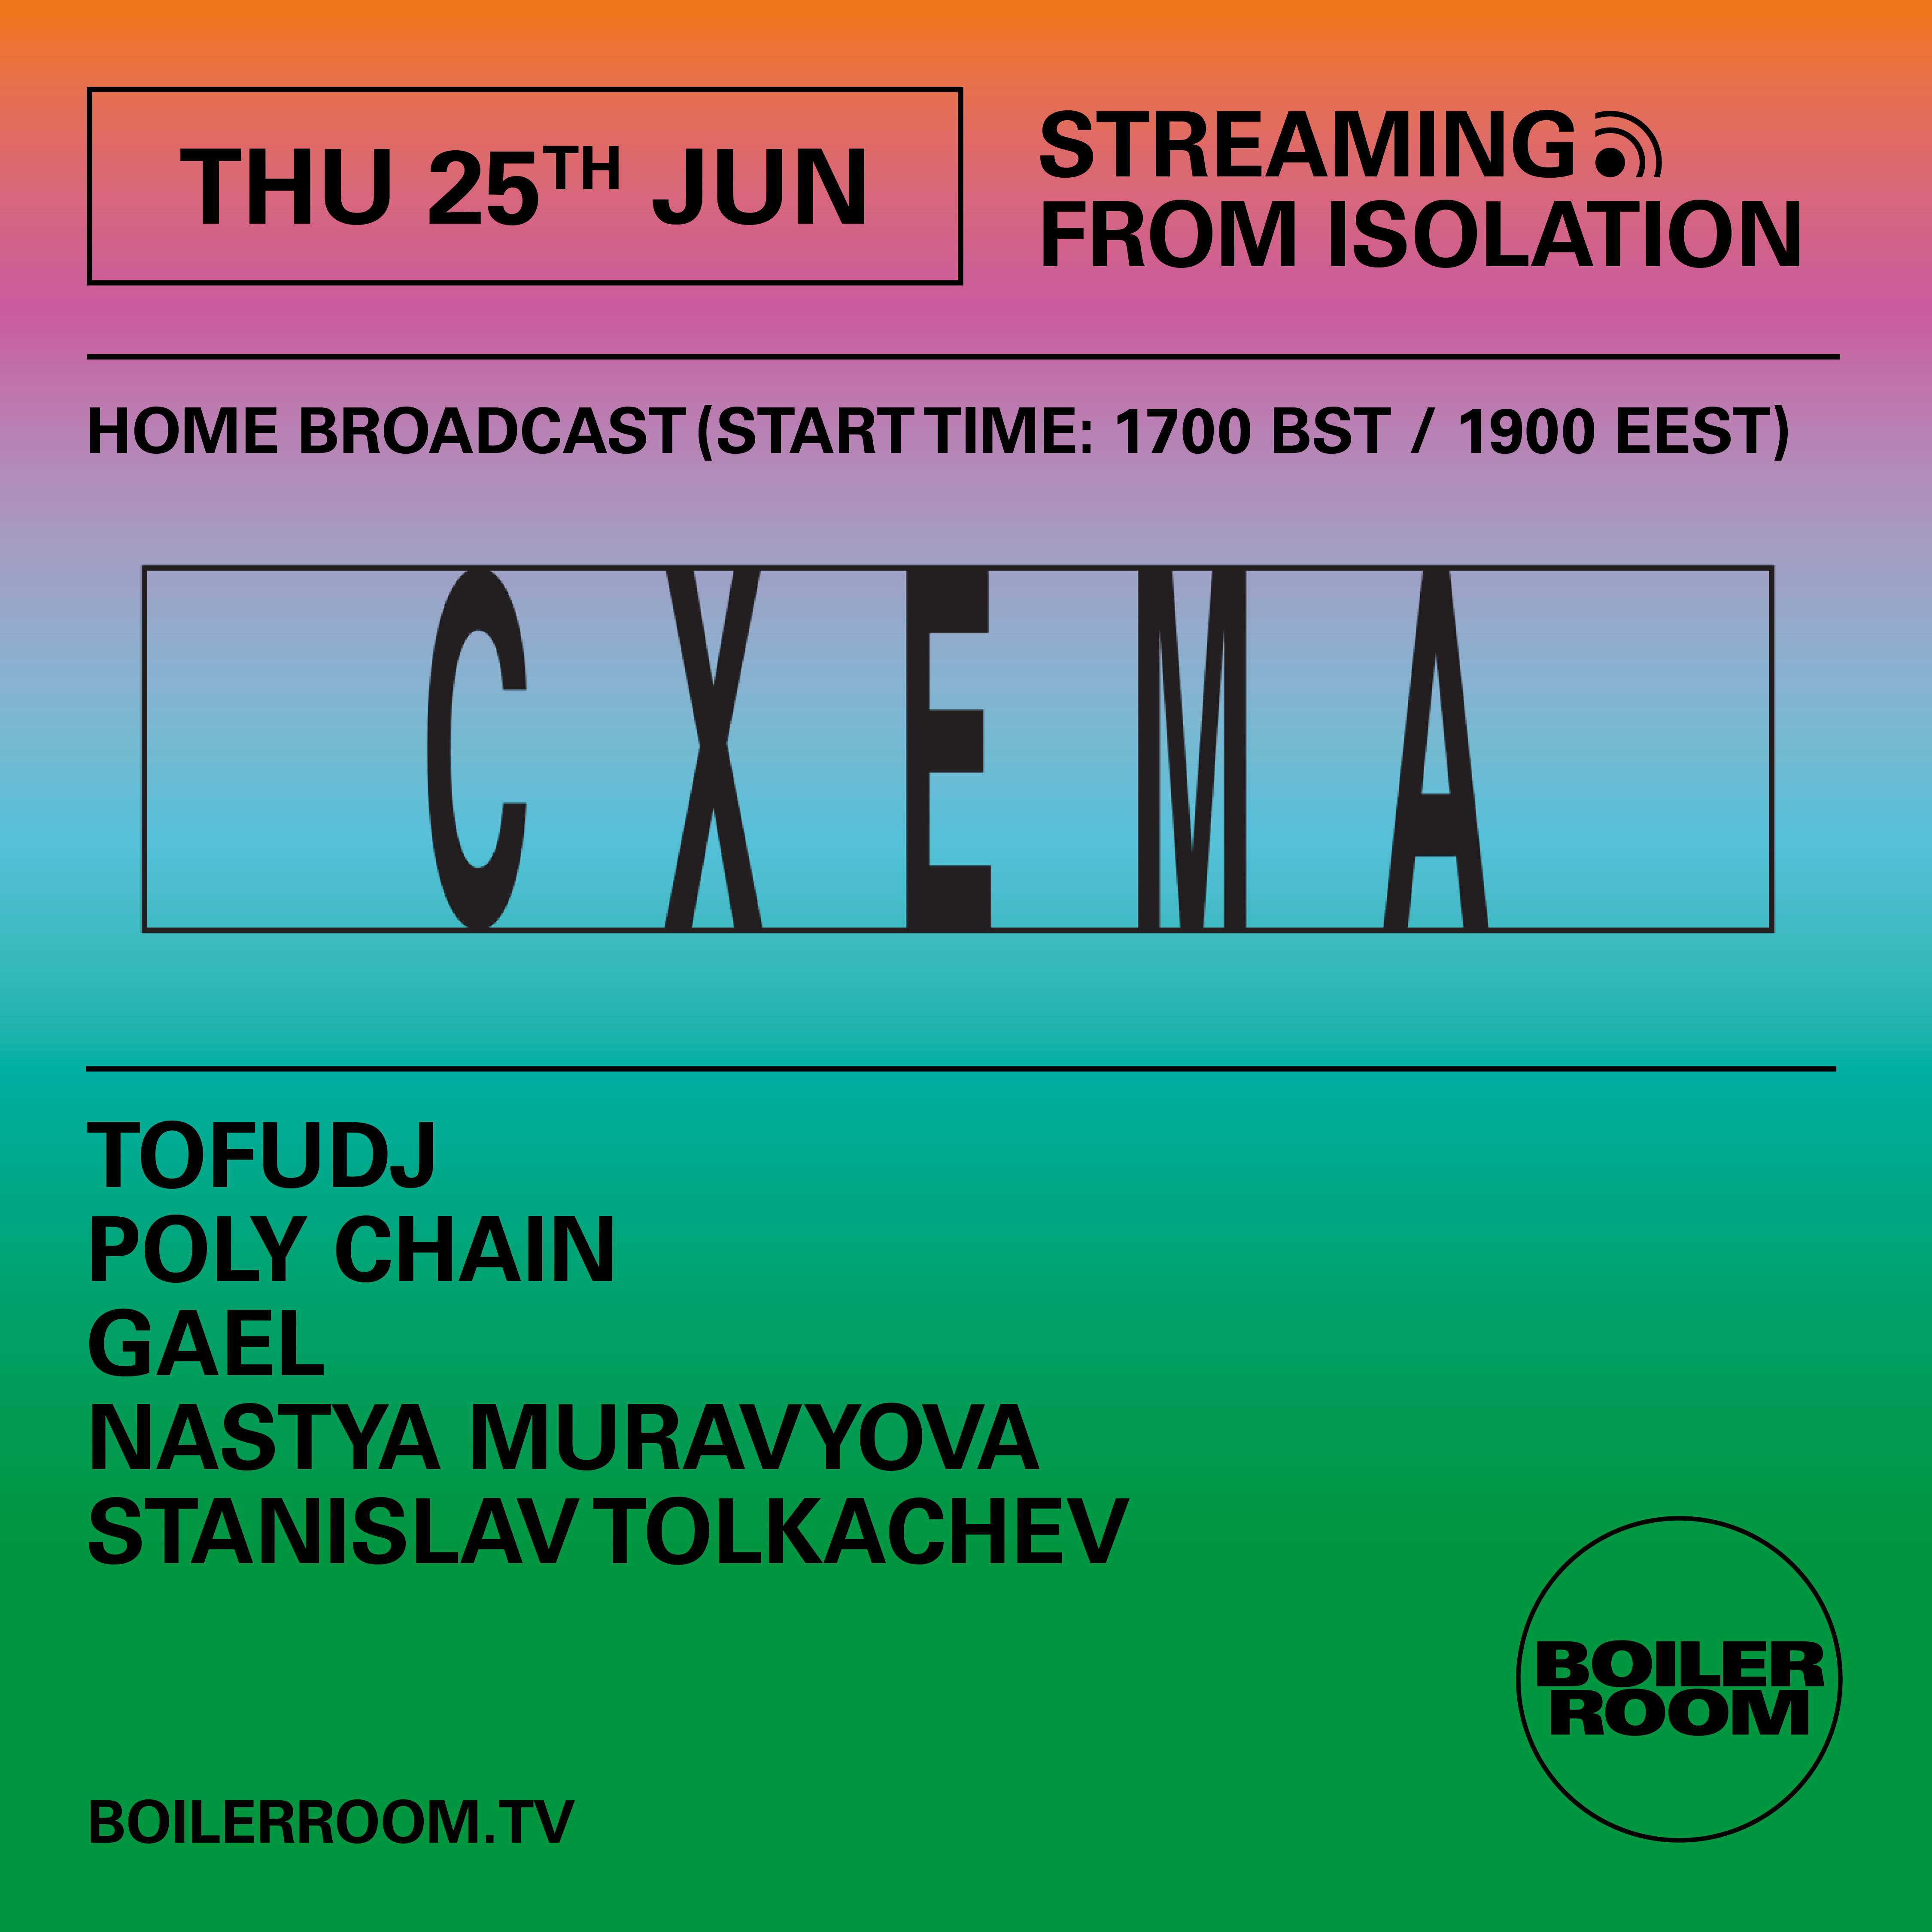 Streaming From Isolation with Cxema Flyer Image